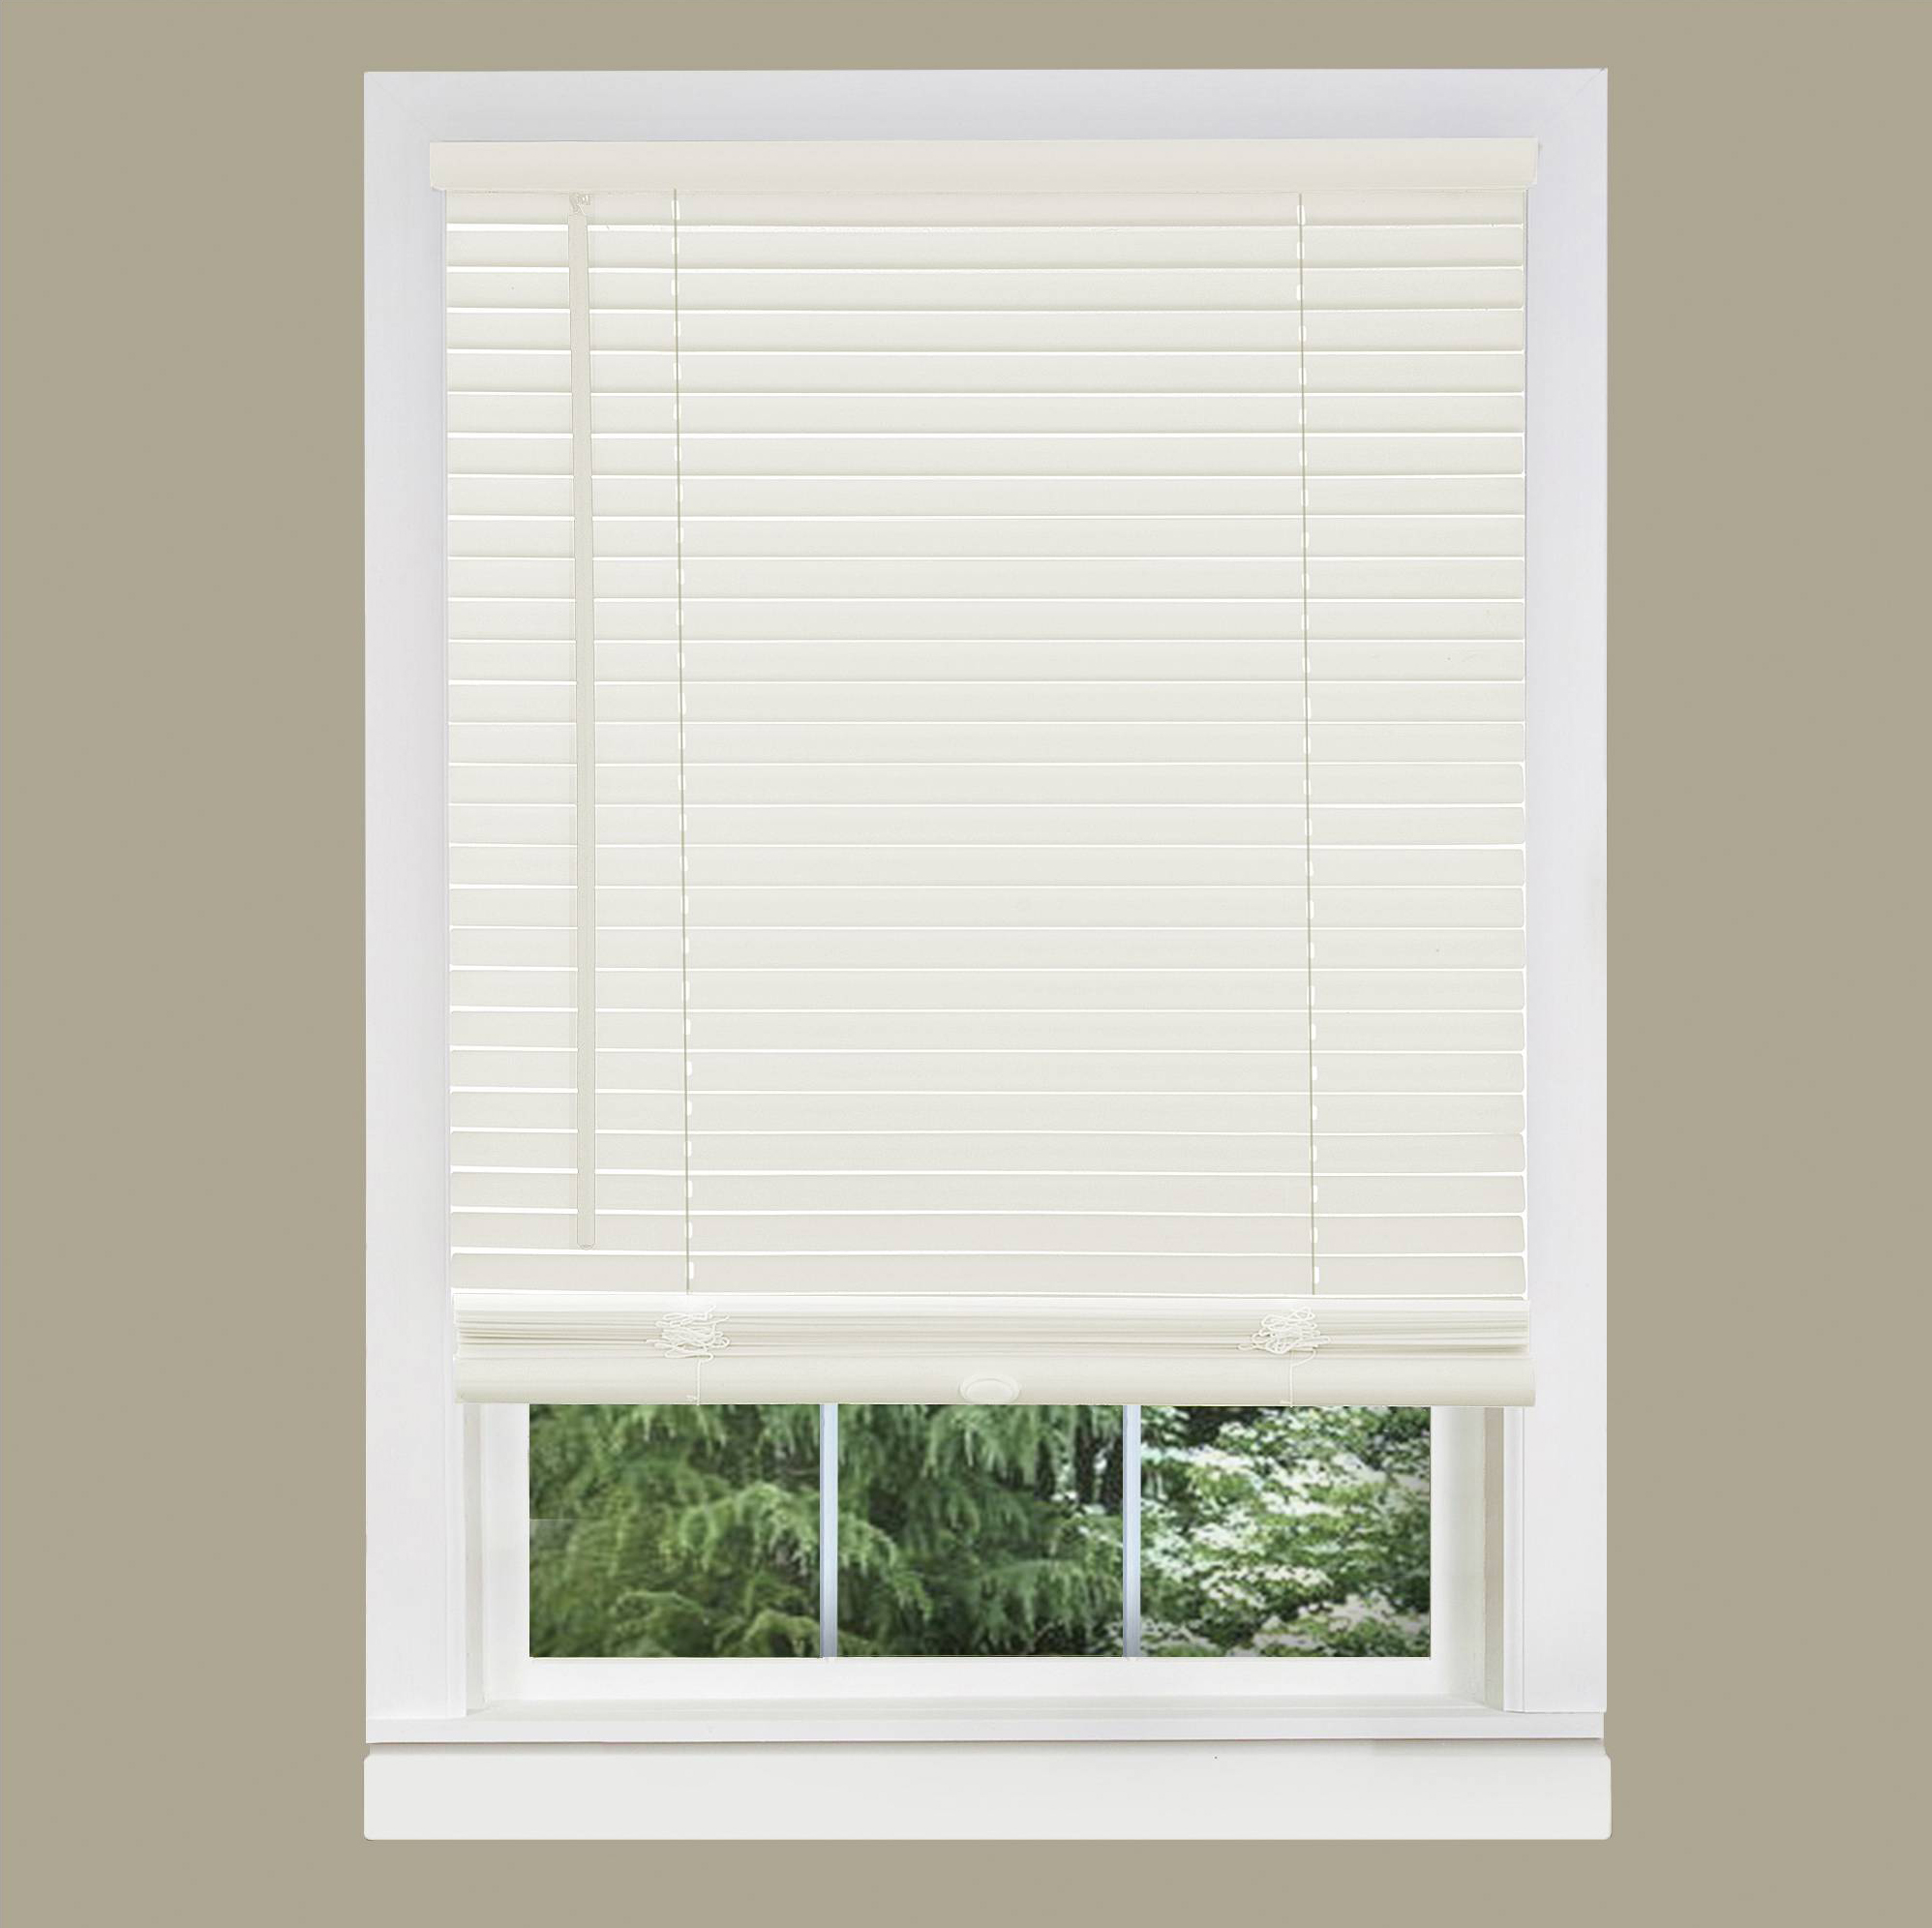 window of great image cdbossington silhouette blinds roman available ideas design hunter mini shade in cordless interior